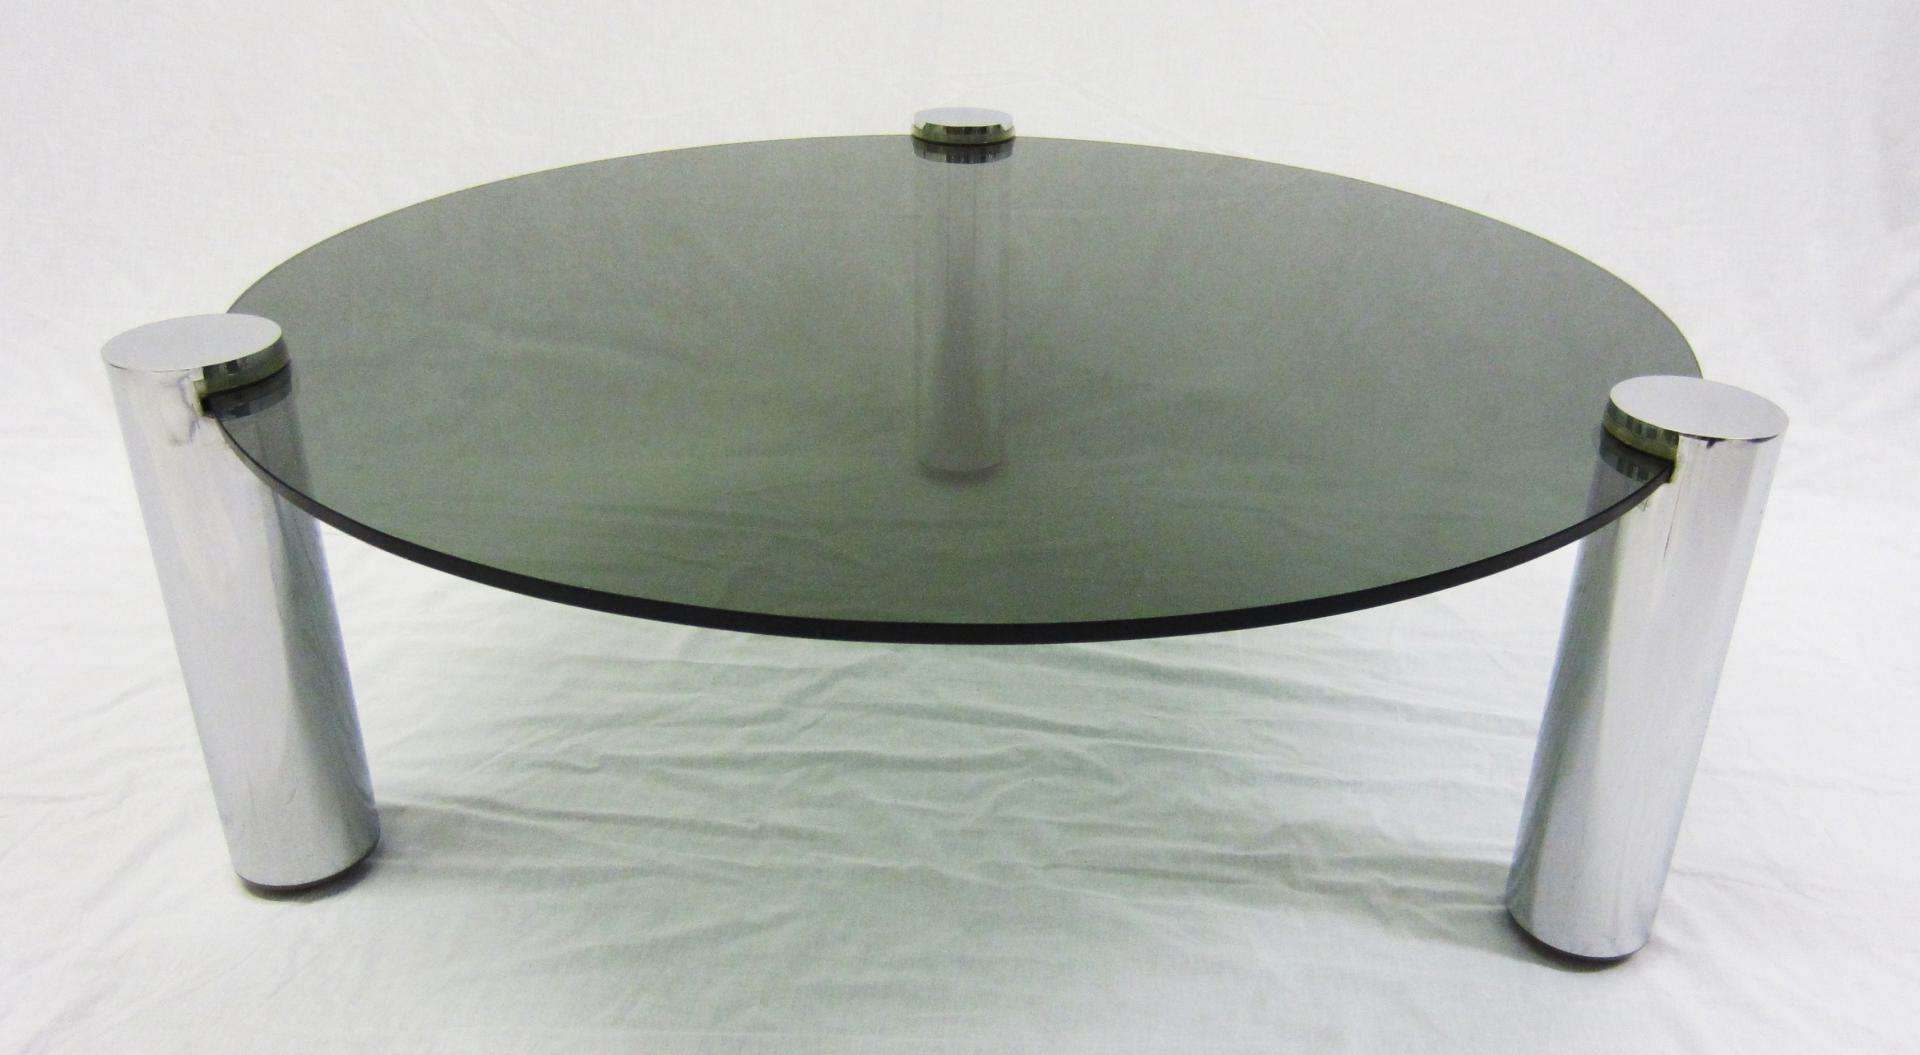 Widely Used Round Chrome Coffee Tables Intended For Round Glass And Chrome Coffee Table From Pieff, 1960S For Sale At (View 20 of 20)